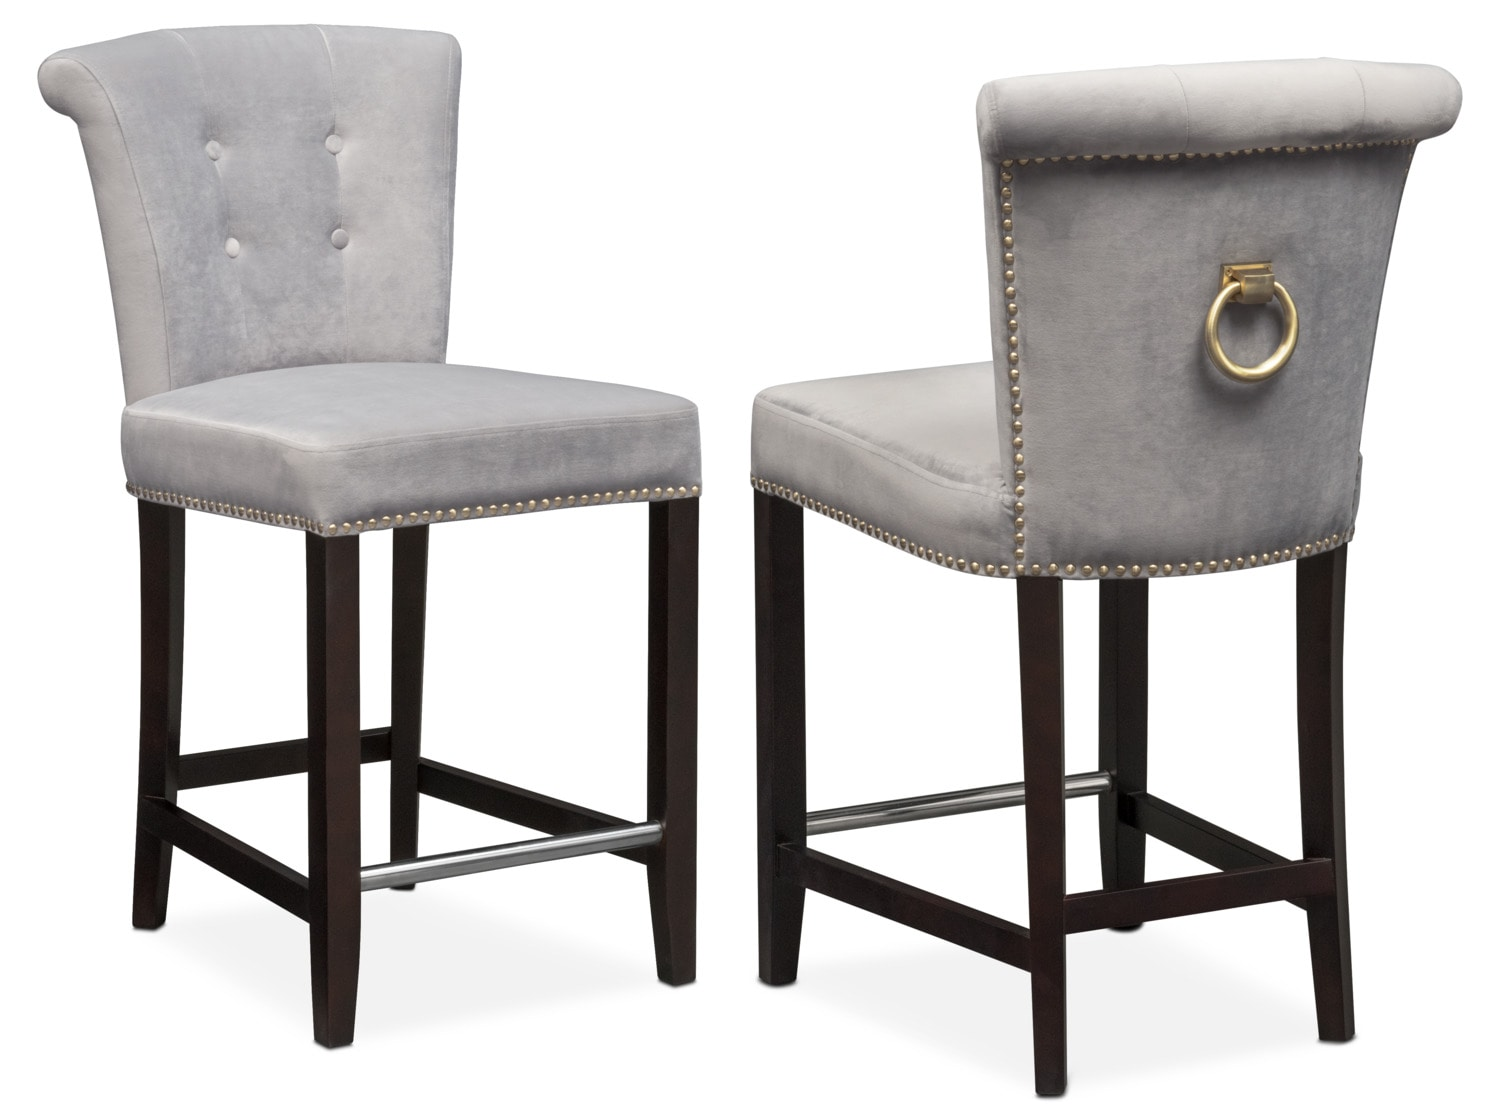 Calloway Counter-Height Stool - Gray/Gold  sc 1 st  American Signature Furniture & Counter u0026 Bar Stools | American Signature Furniture islam-shia.org